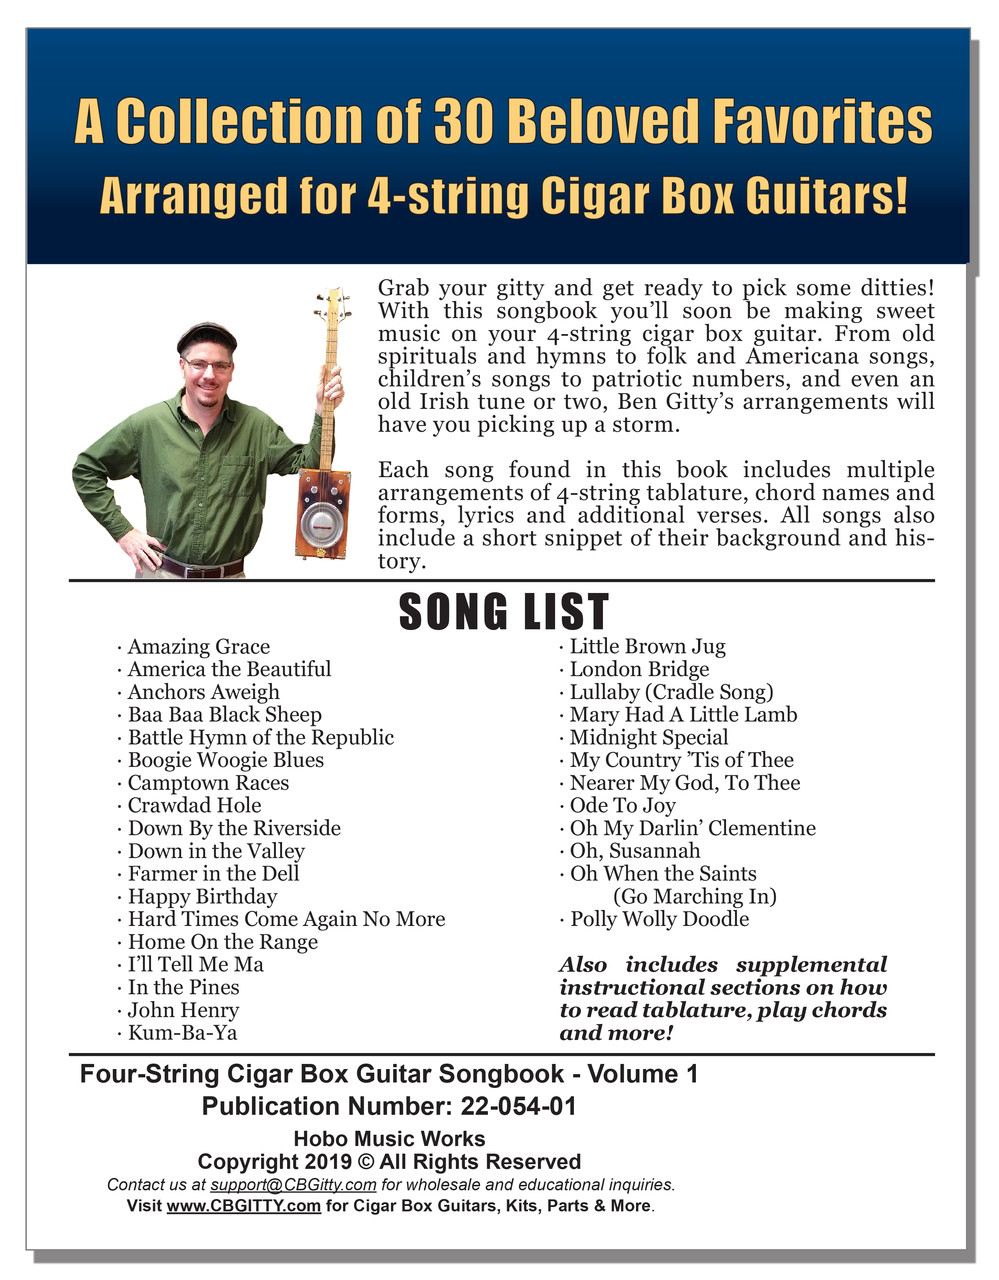 Four-String Cigar Box Guitar Songbook - Vol  1: 150 pages of Songs Arranged  for Open G